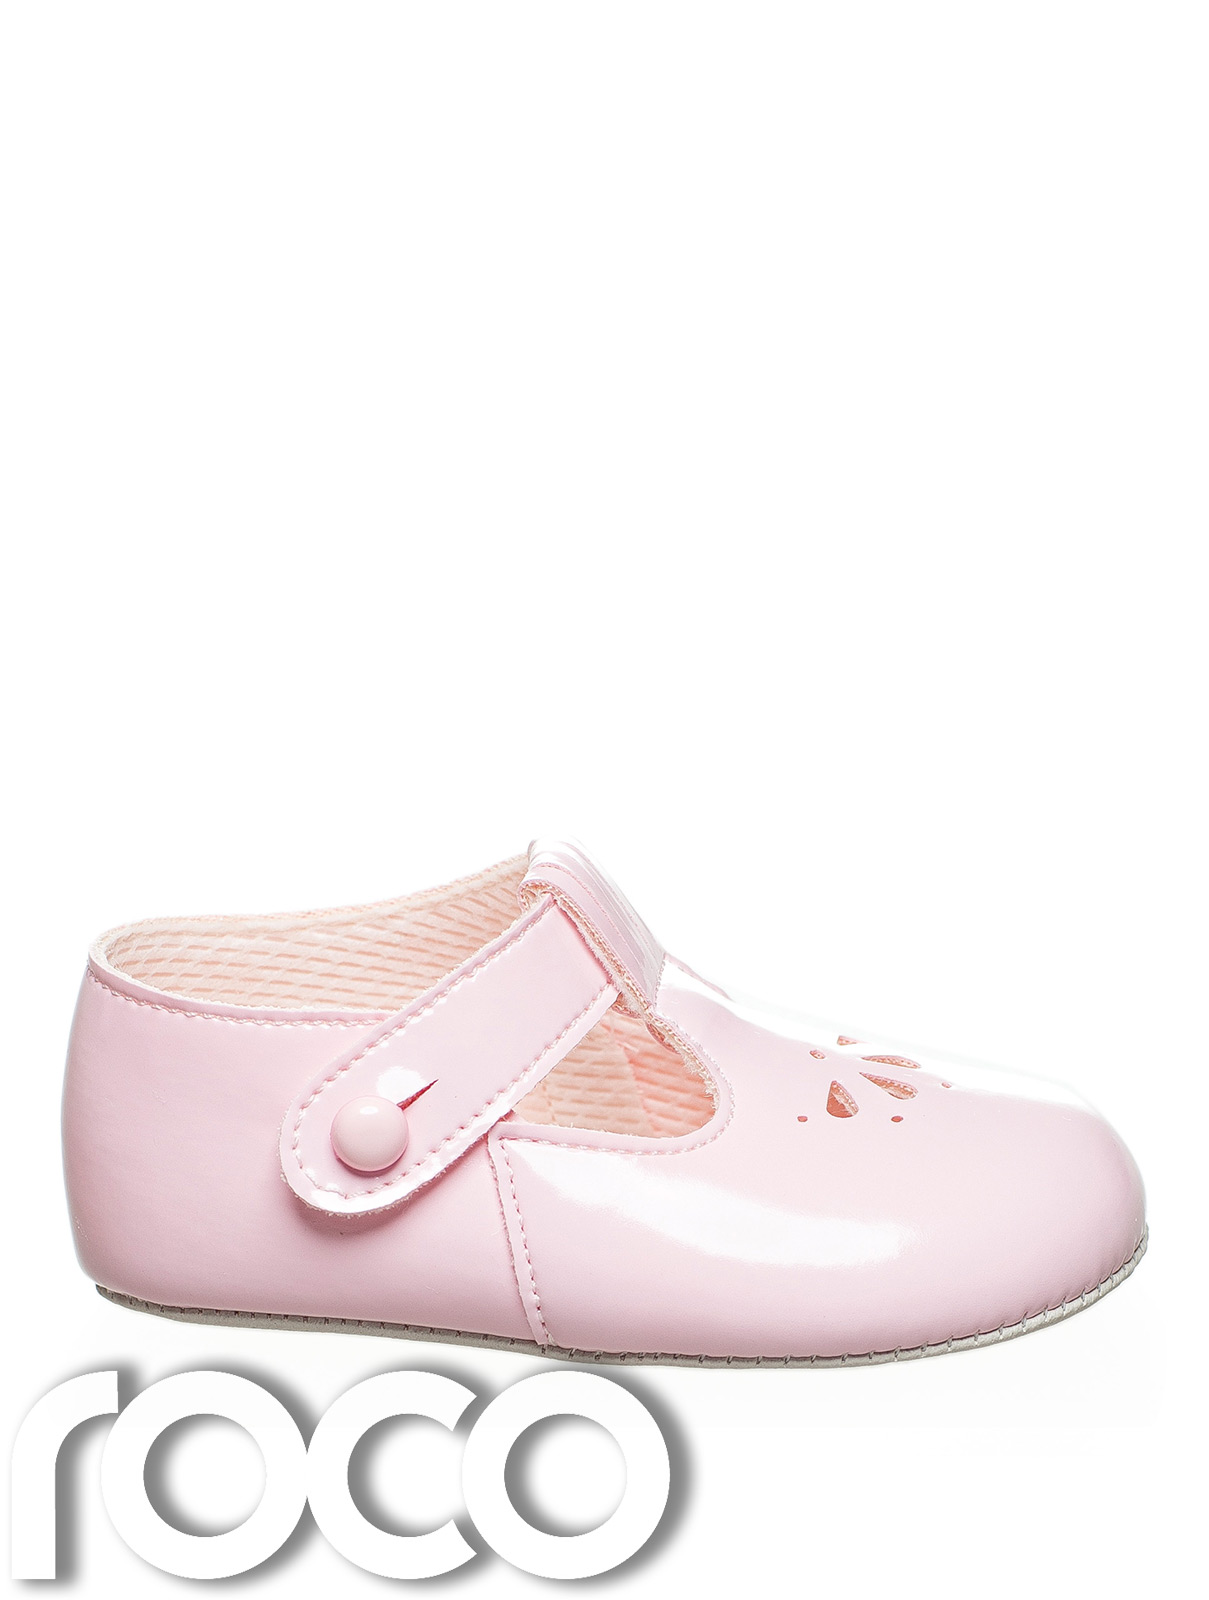 baby pink soft sole shoes baby pink christening